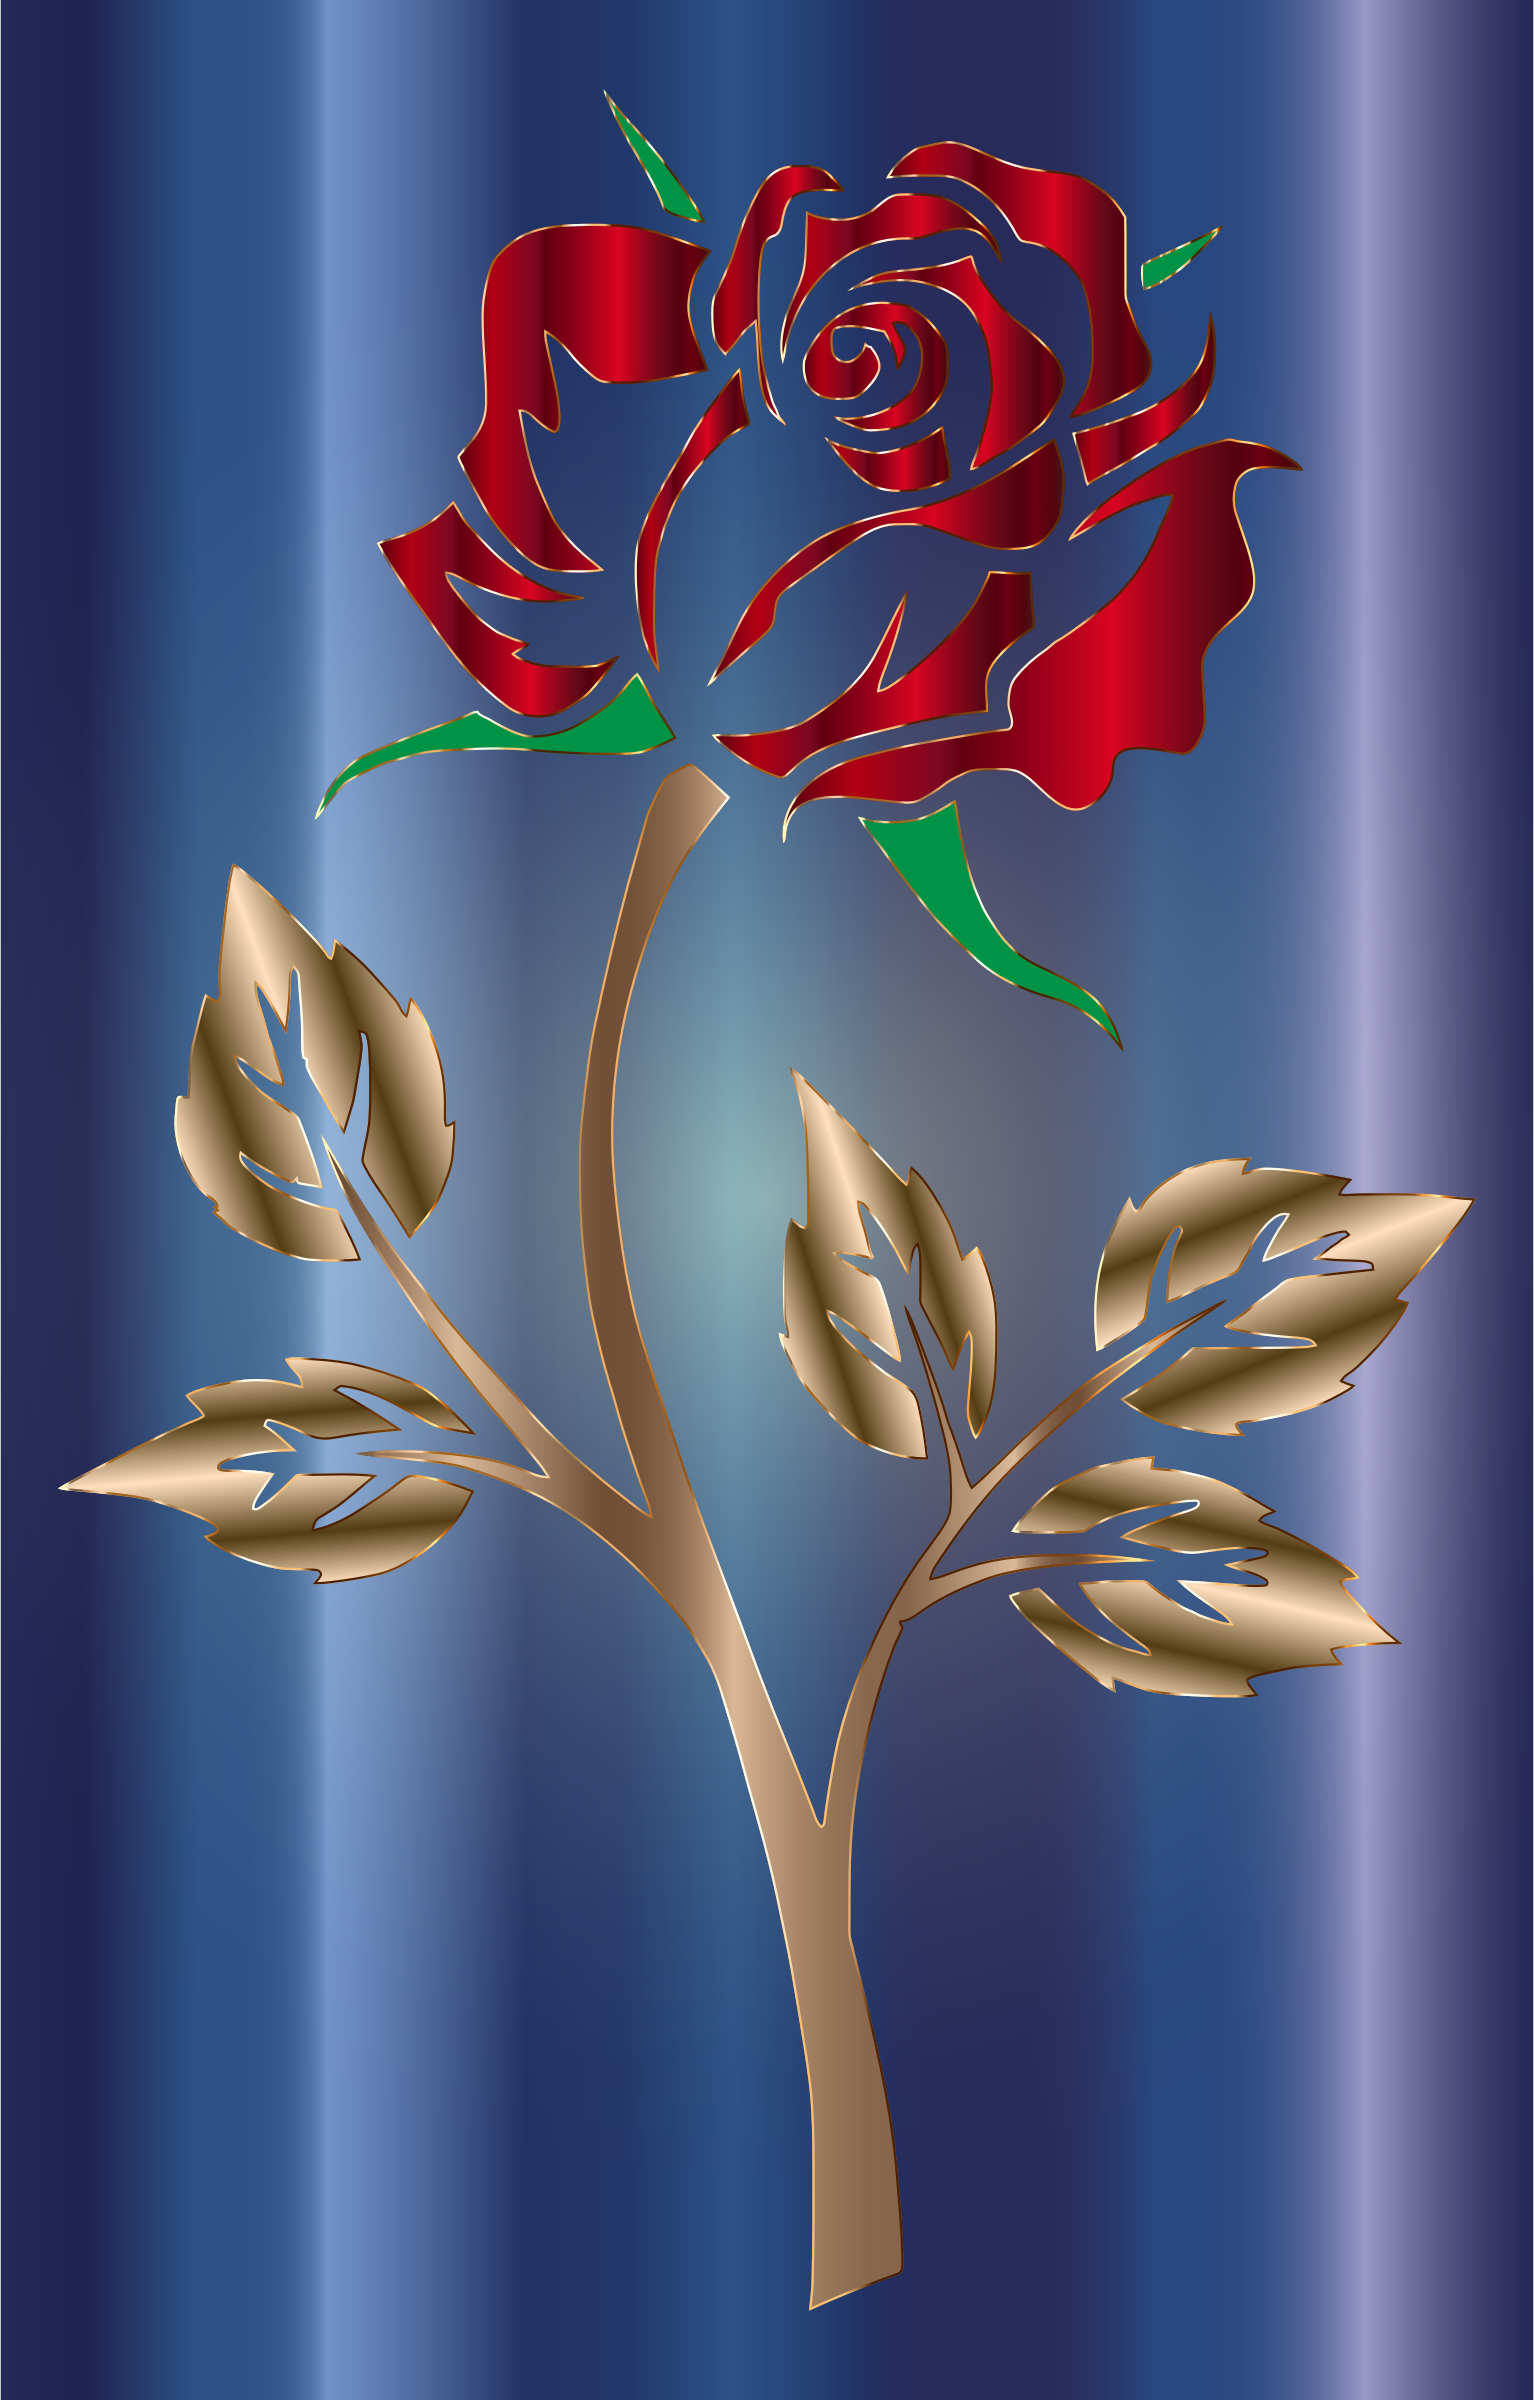 Colored Rose 5 by GDJ